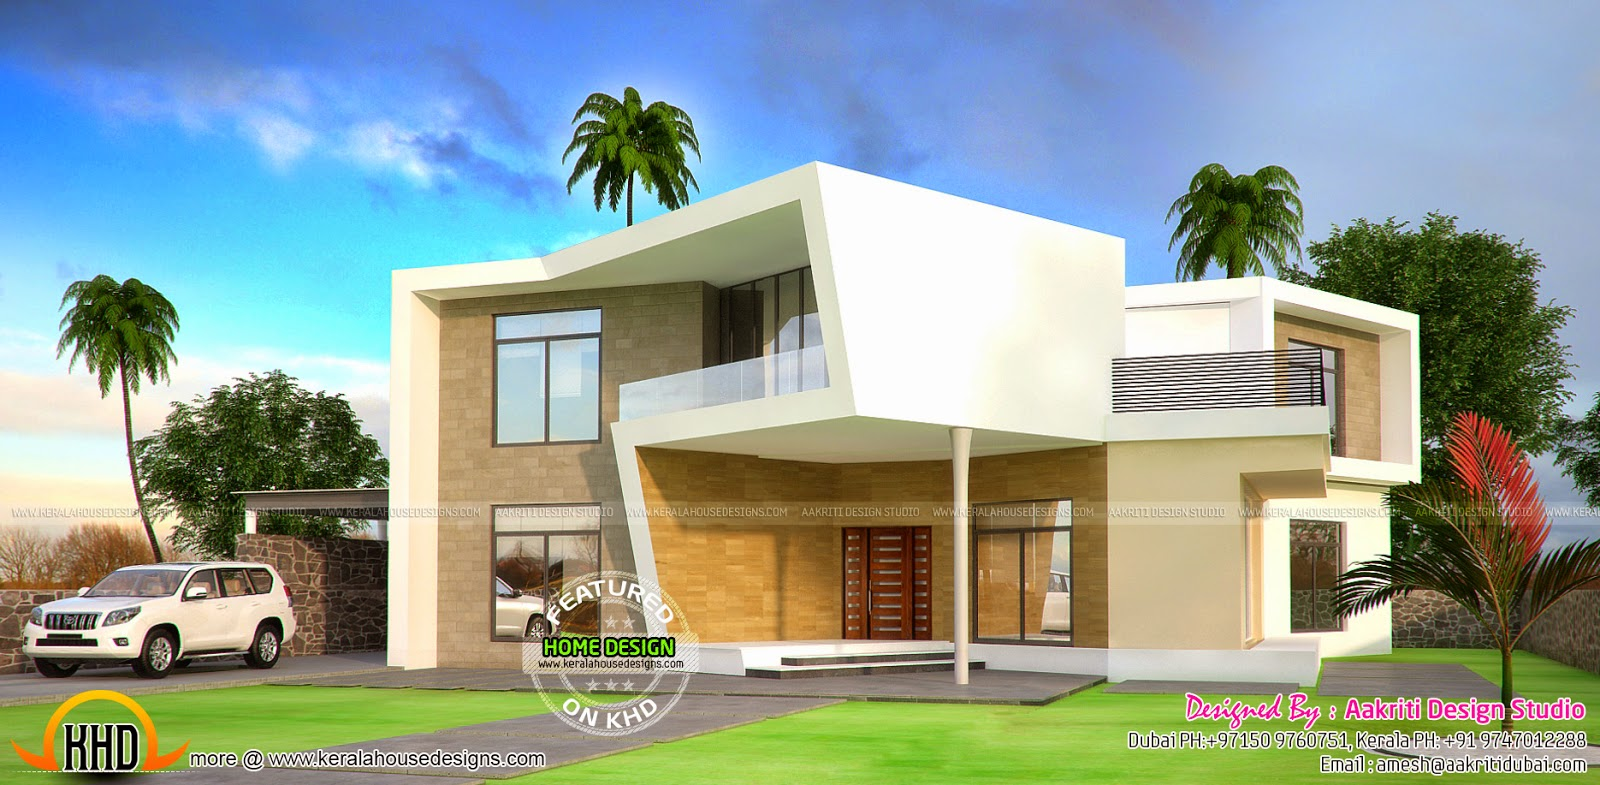 New concept house plan kerala home design and floor plans for Concept home plans